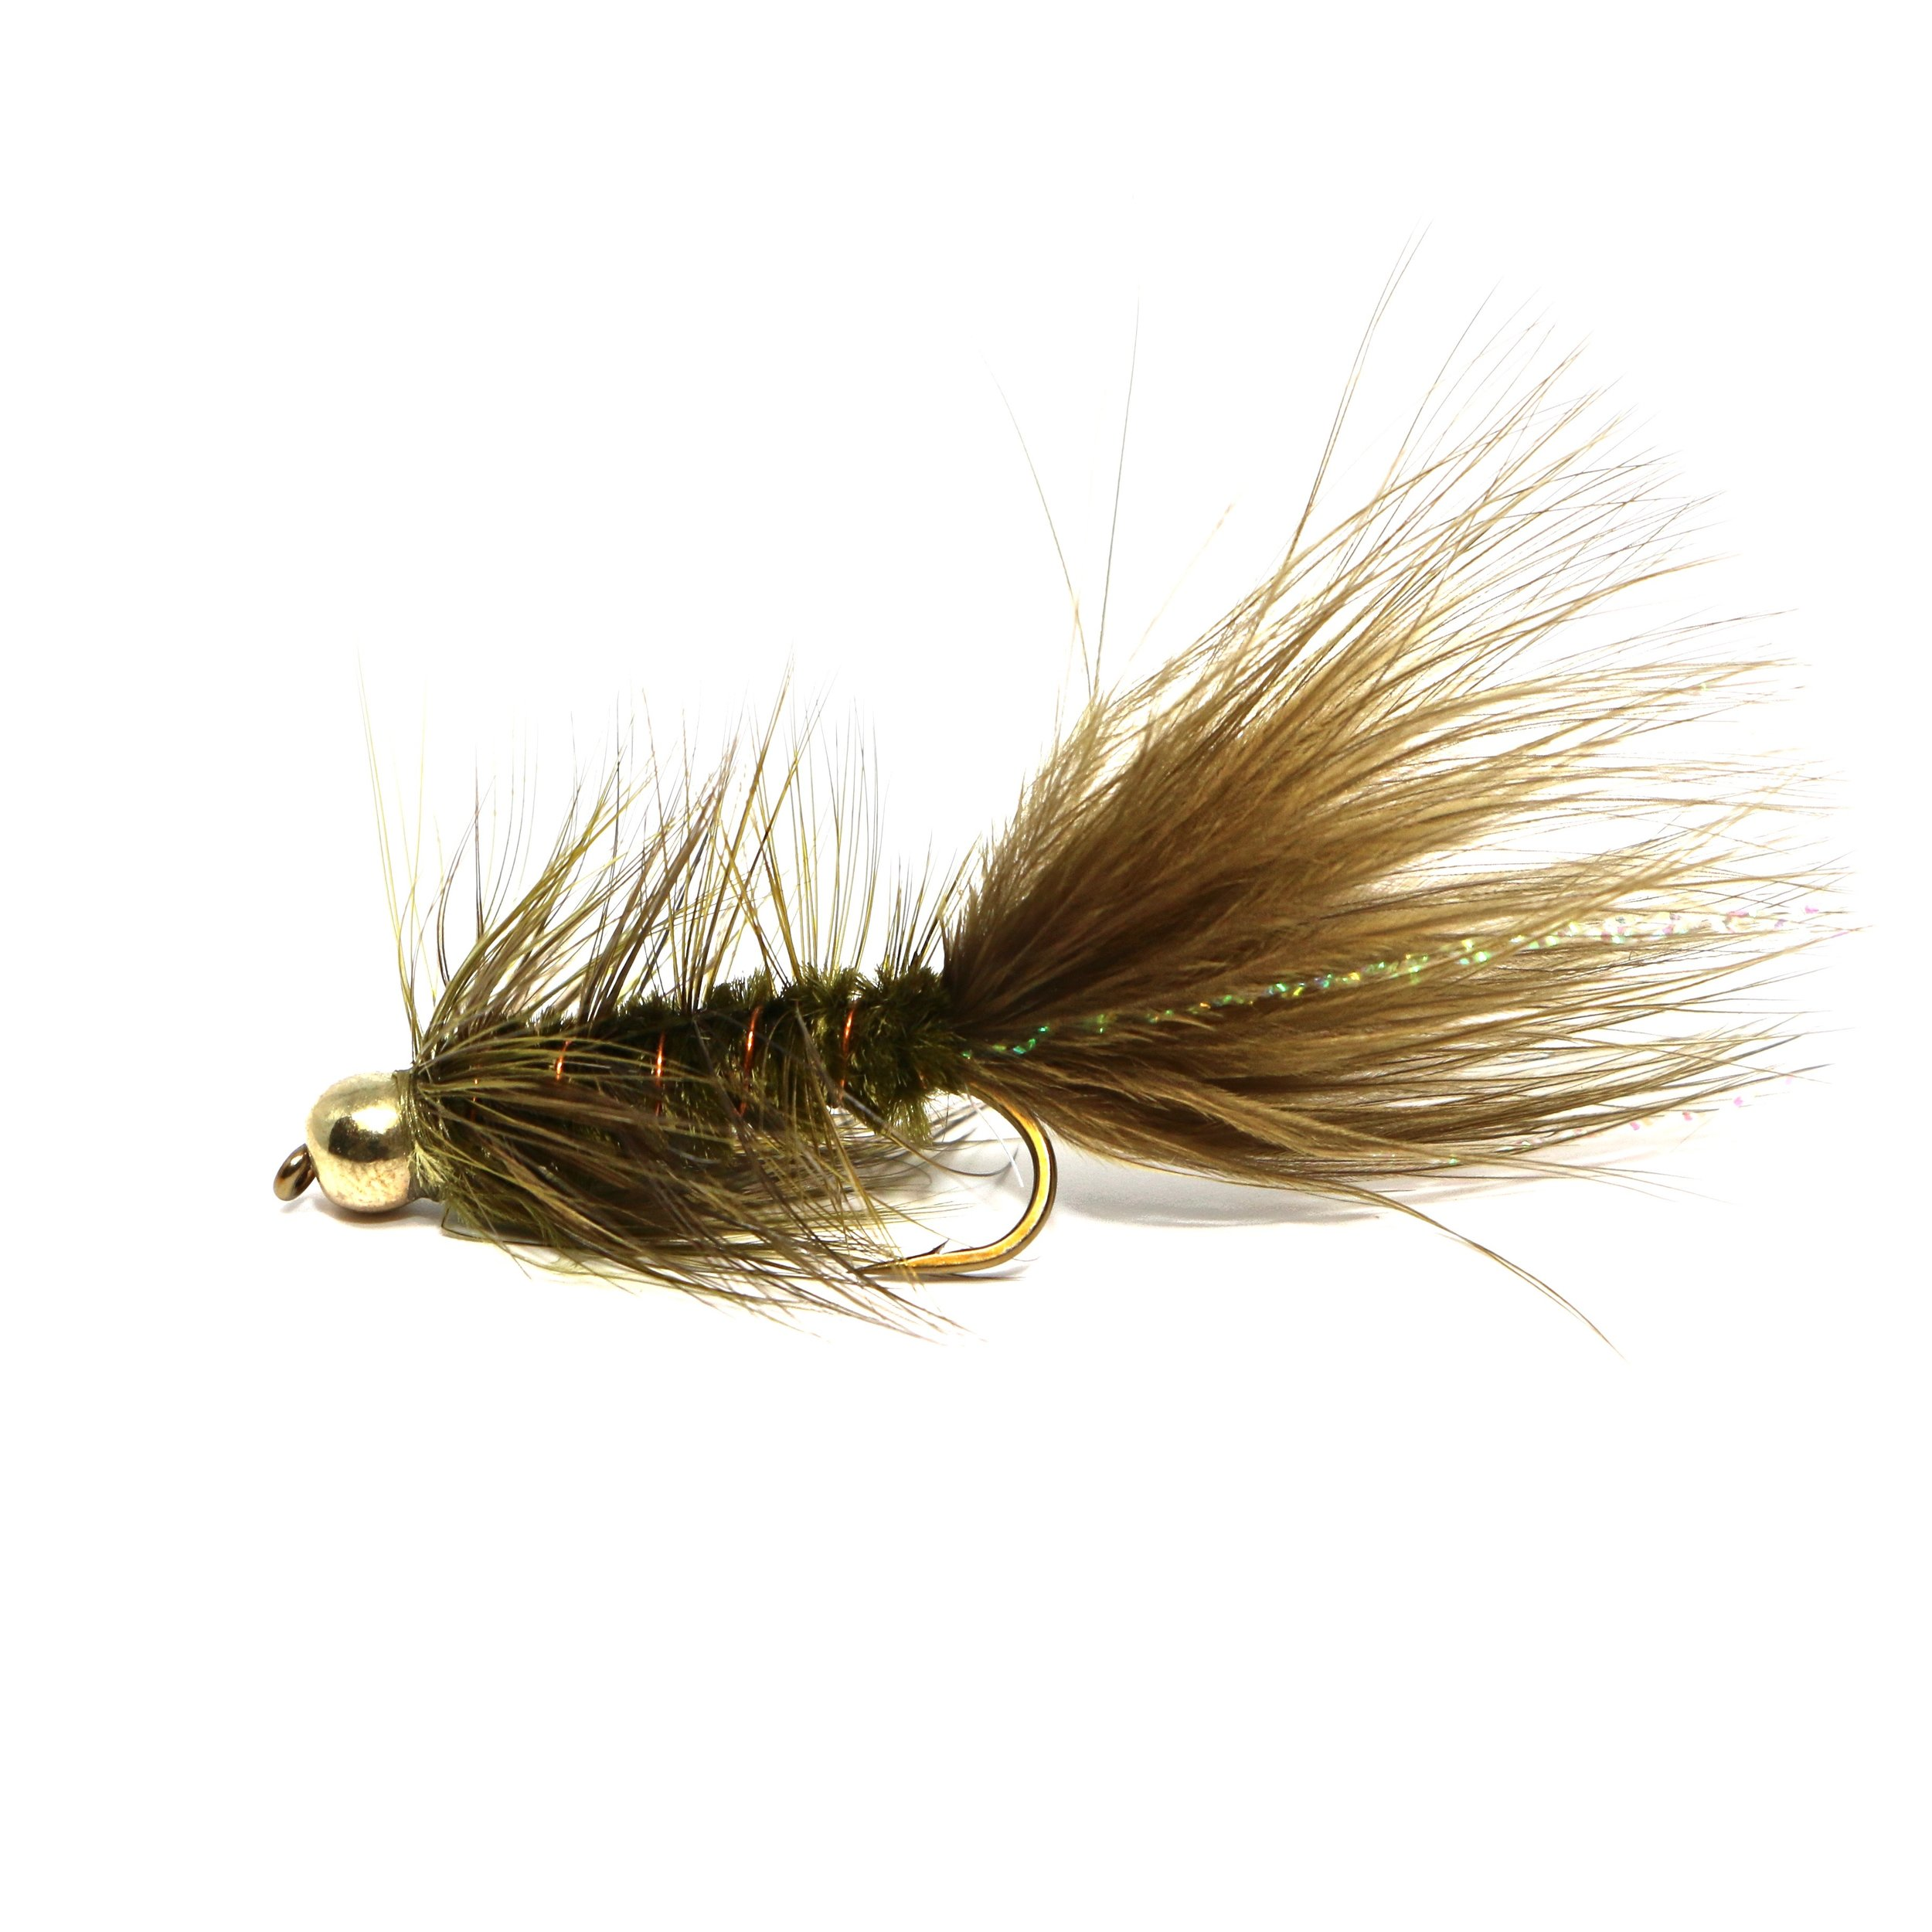 Olive BH Falshabou Bugger:  https://ironbowflyshop.ca/collections/flies/products/bh-flash-a-bugger